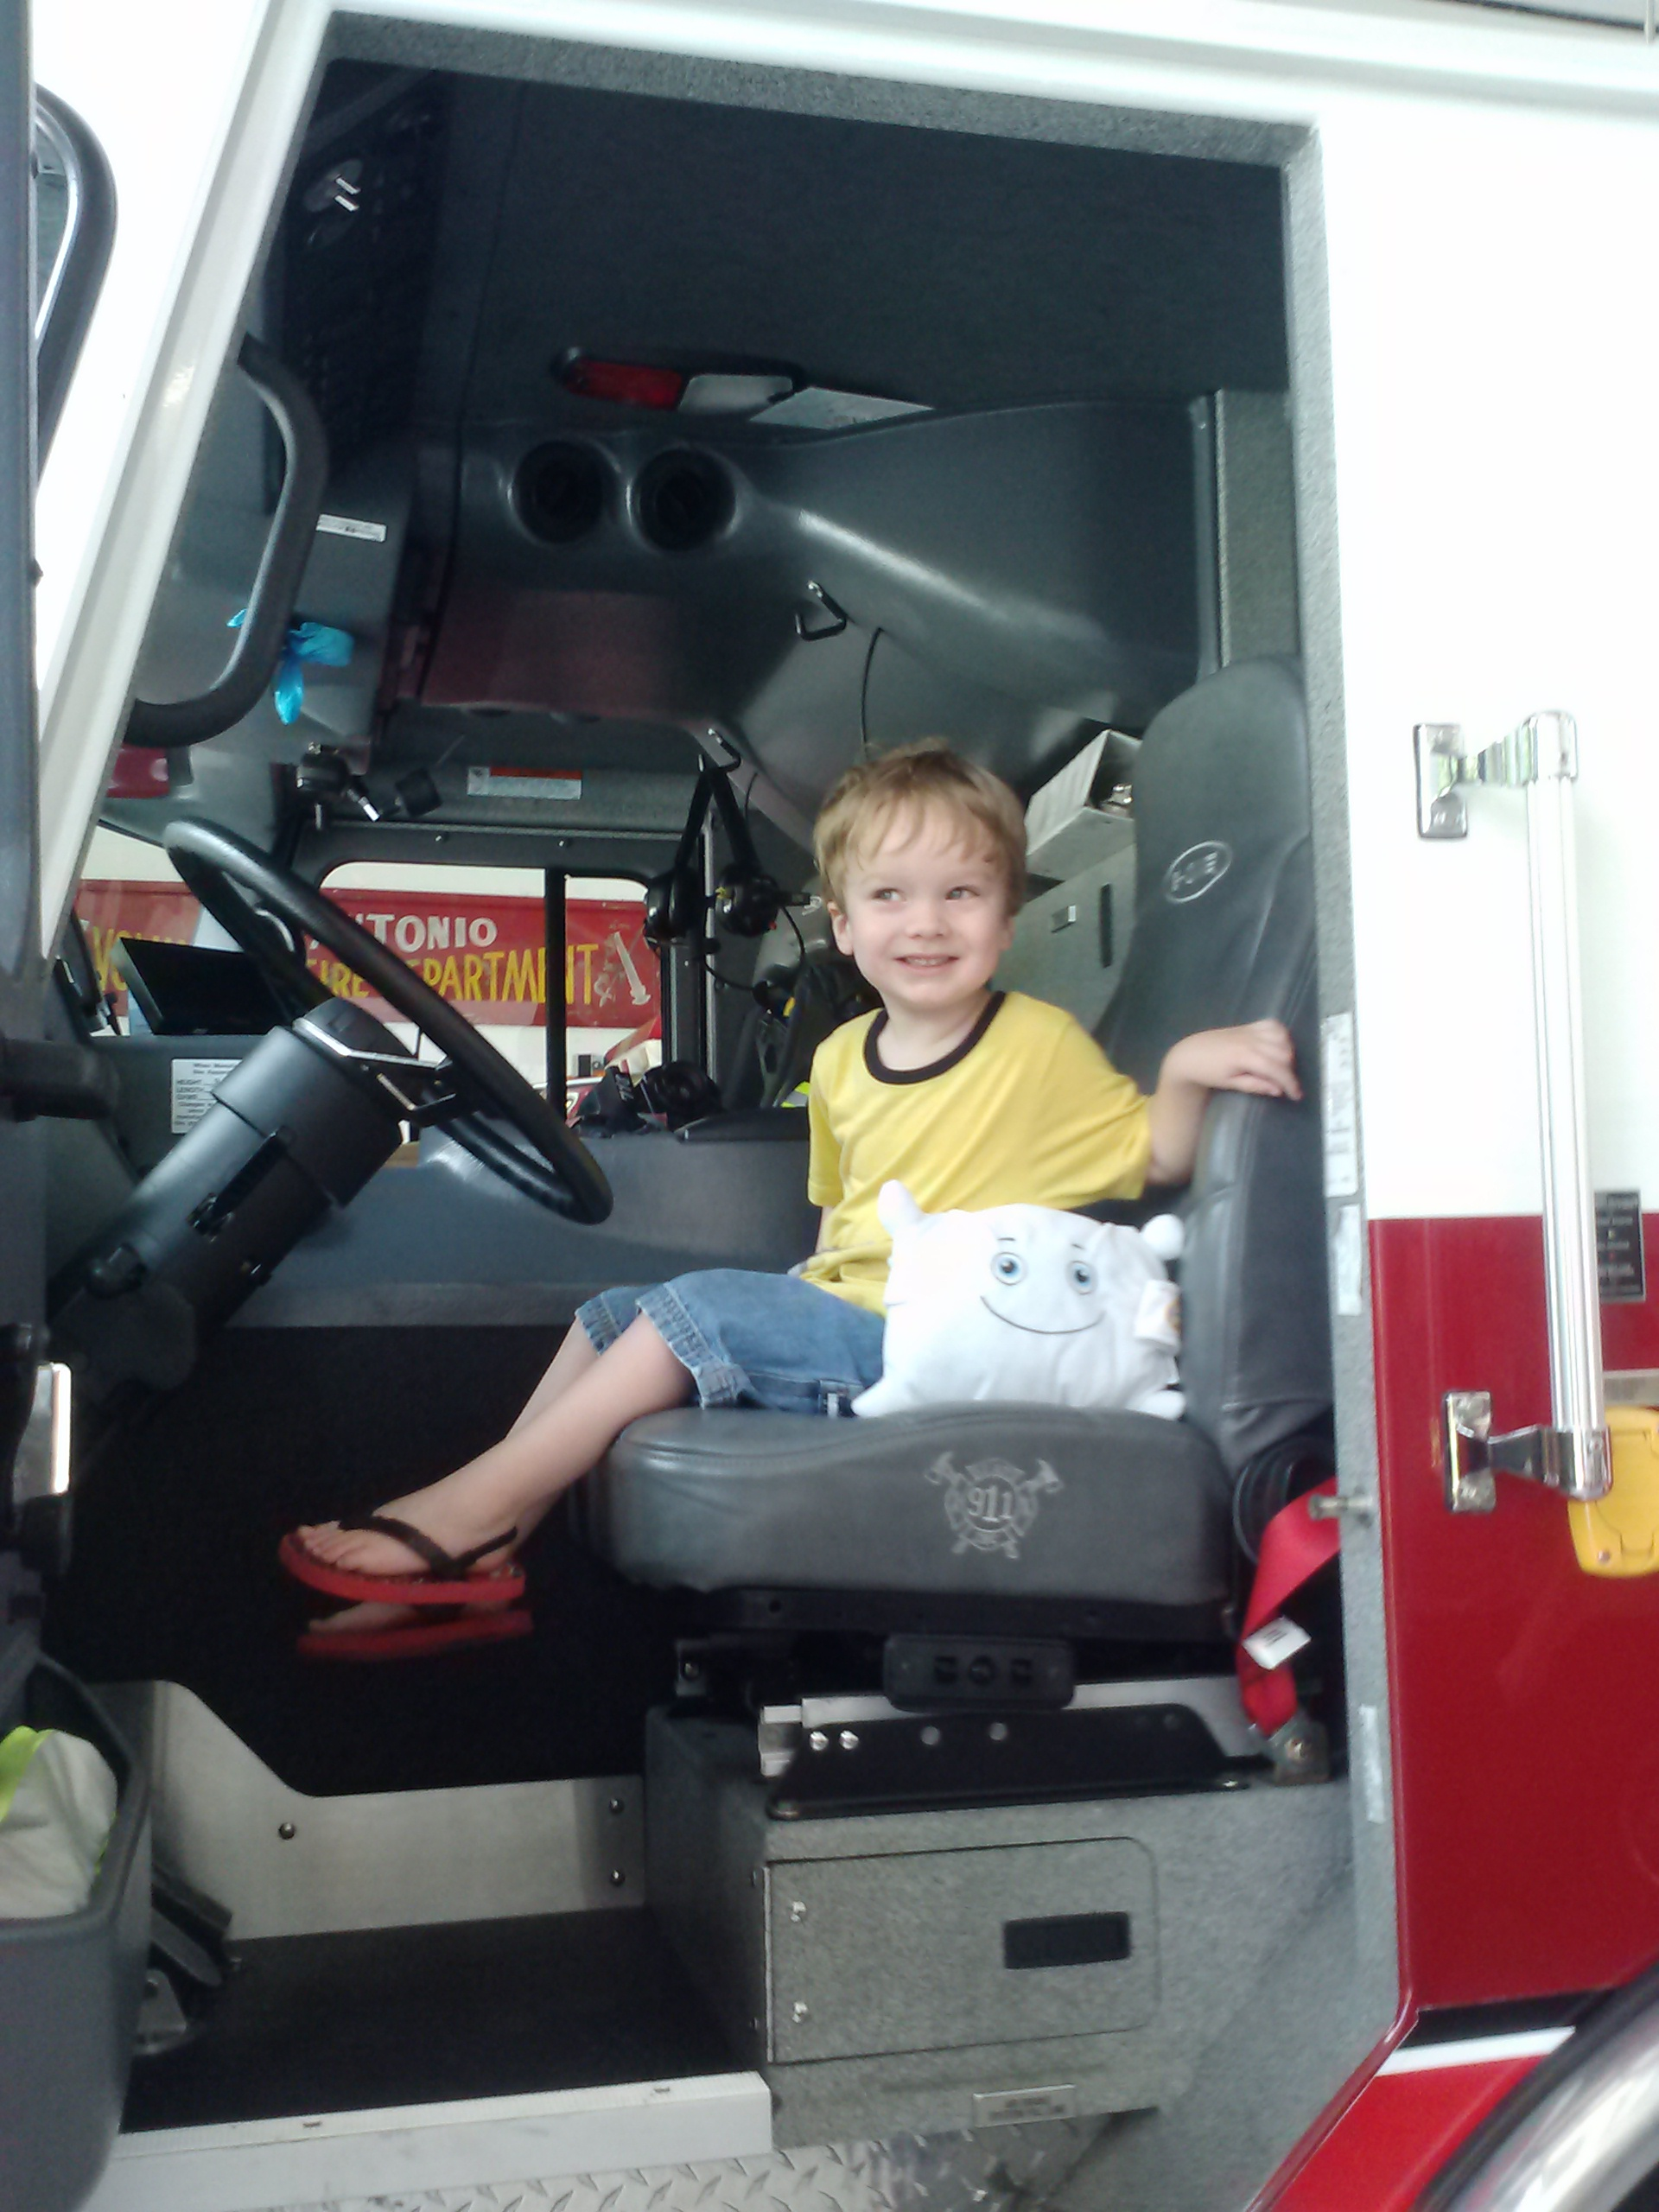 Always cool when you get to ride in the firetruck